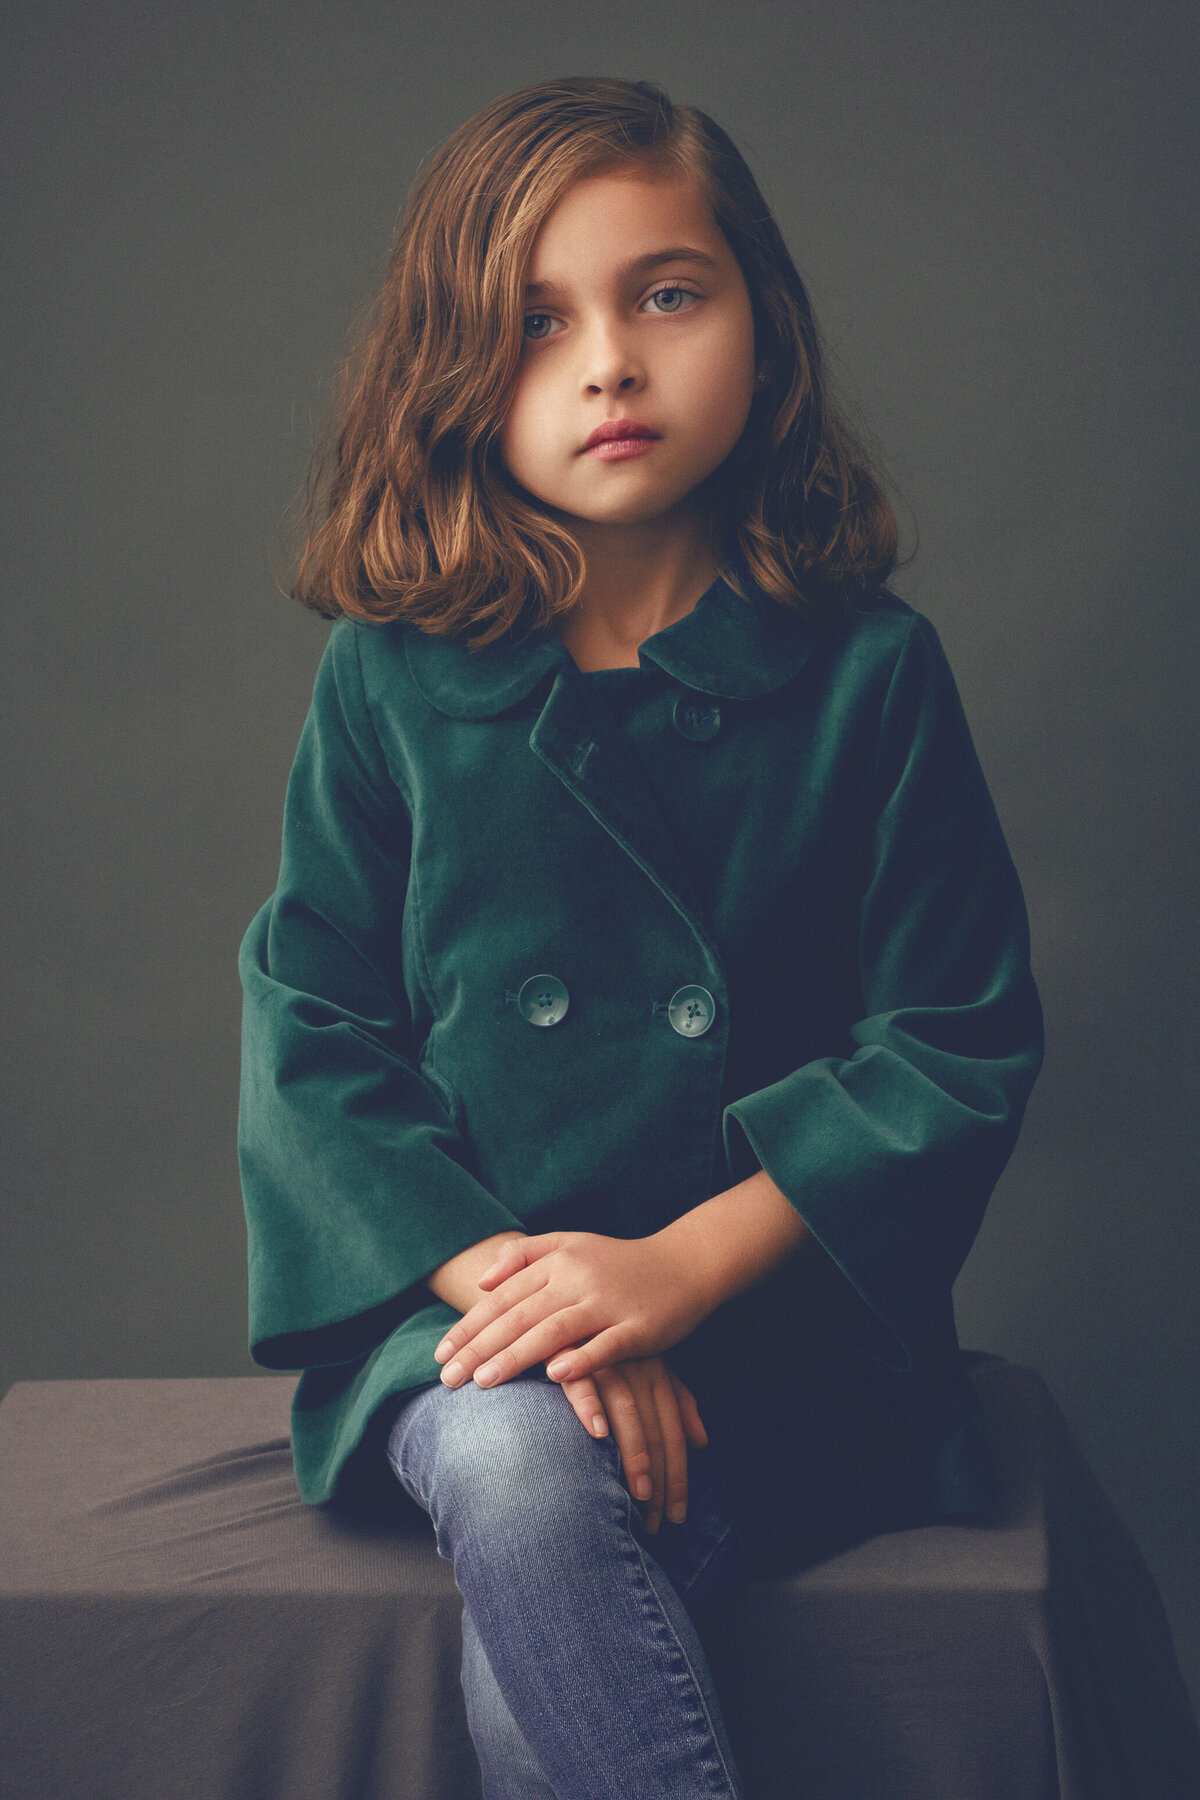 Child portrait of a young girl sitting with leg crossed, looking at camera center.